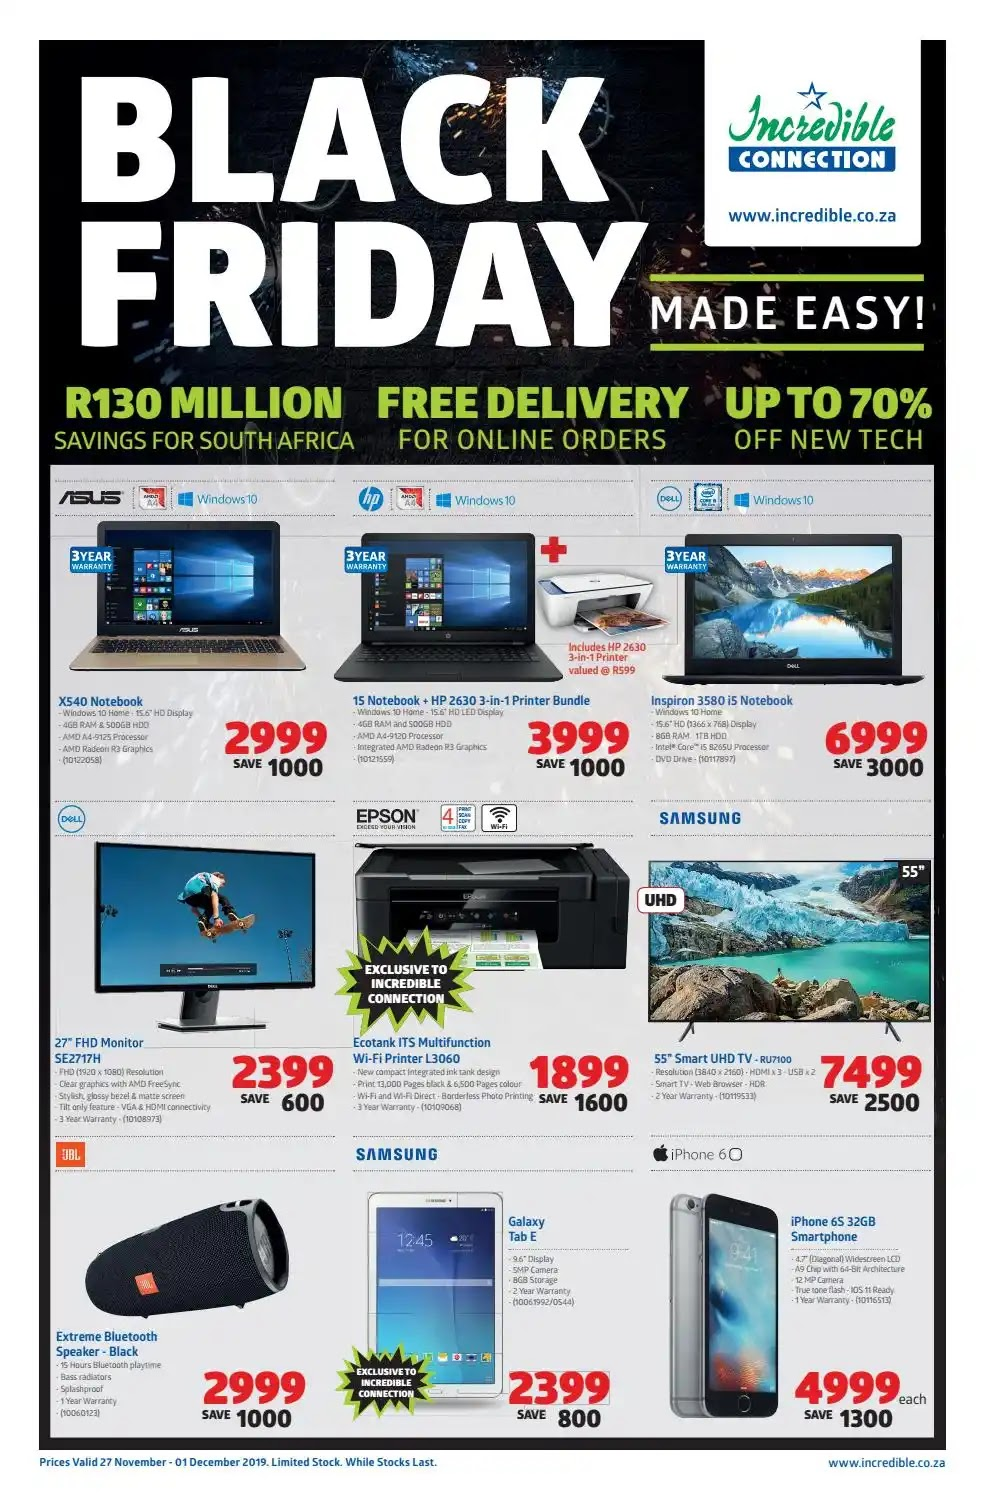 Incredible Connection Black Friday Deals  -  Page 1